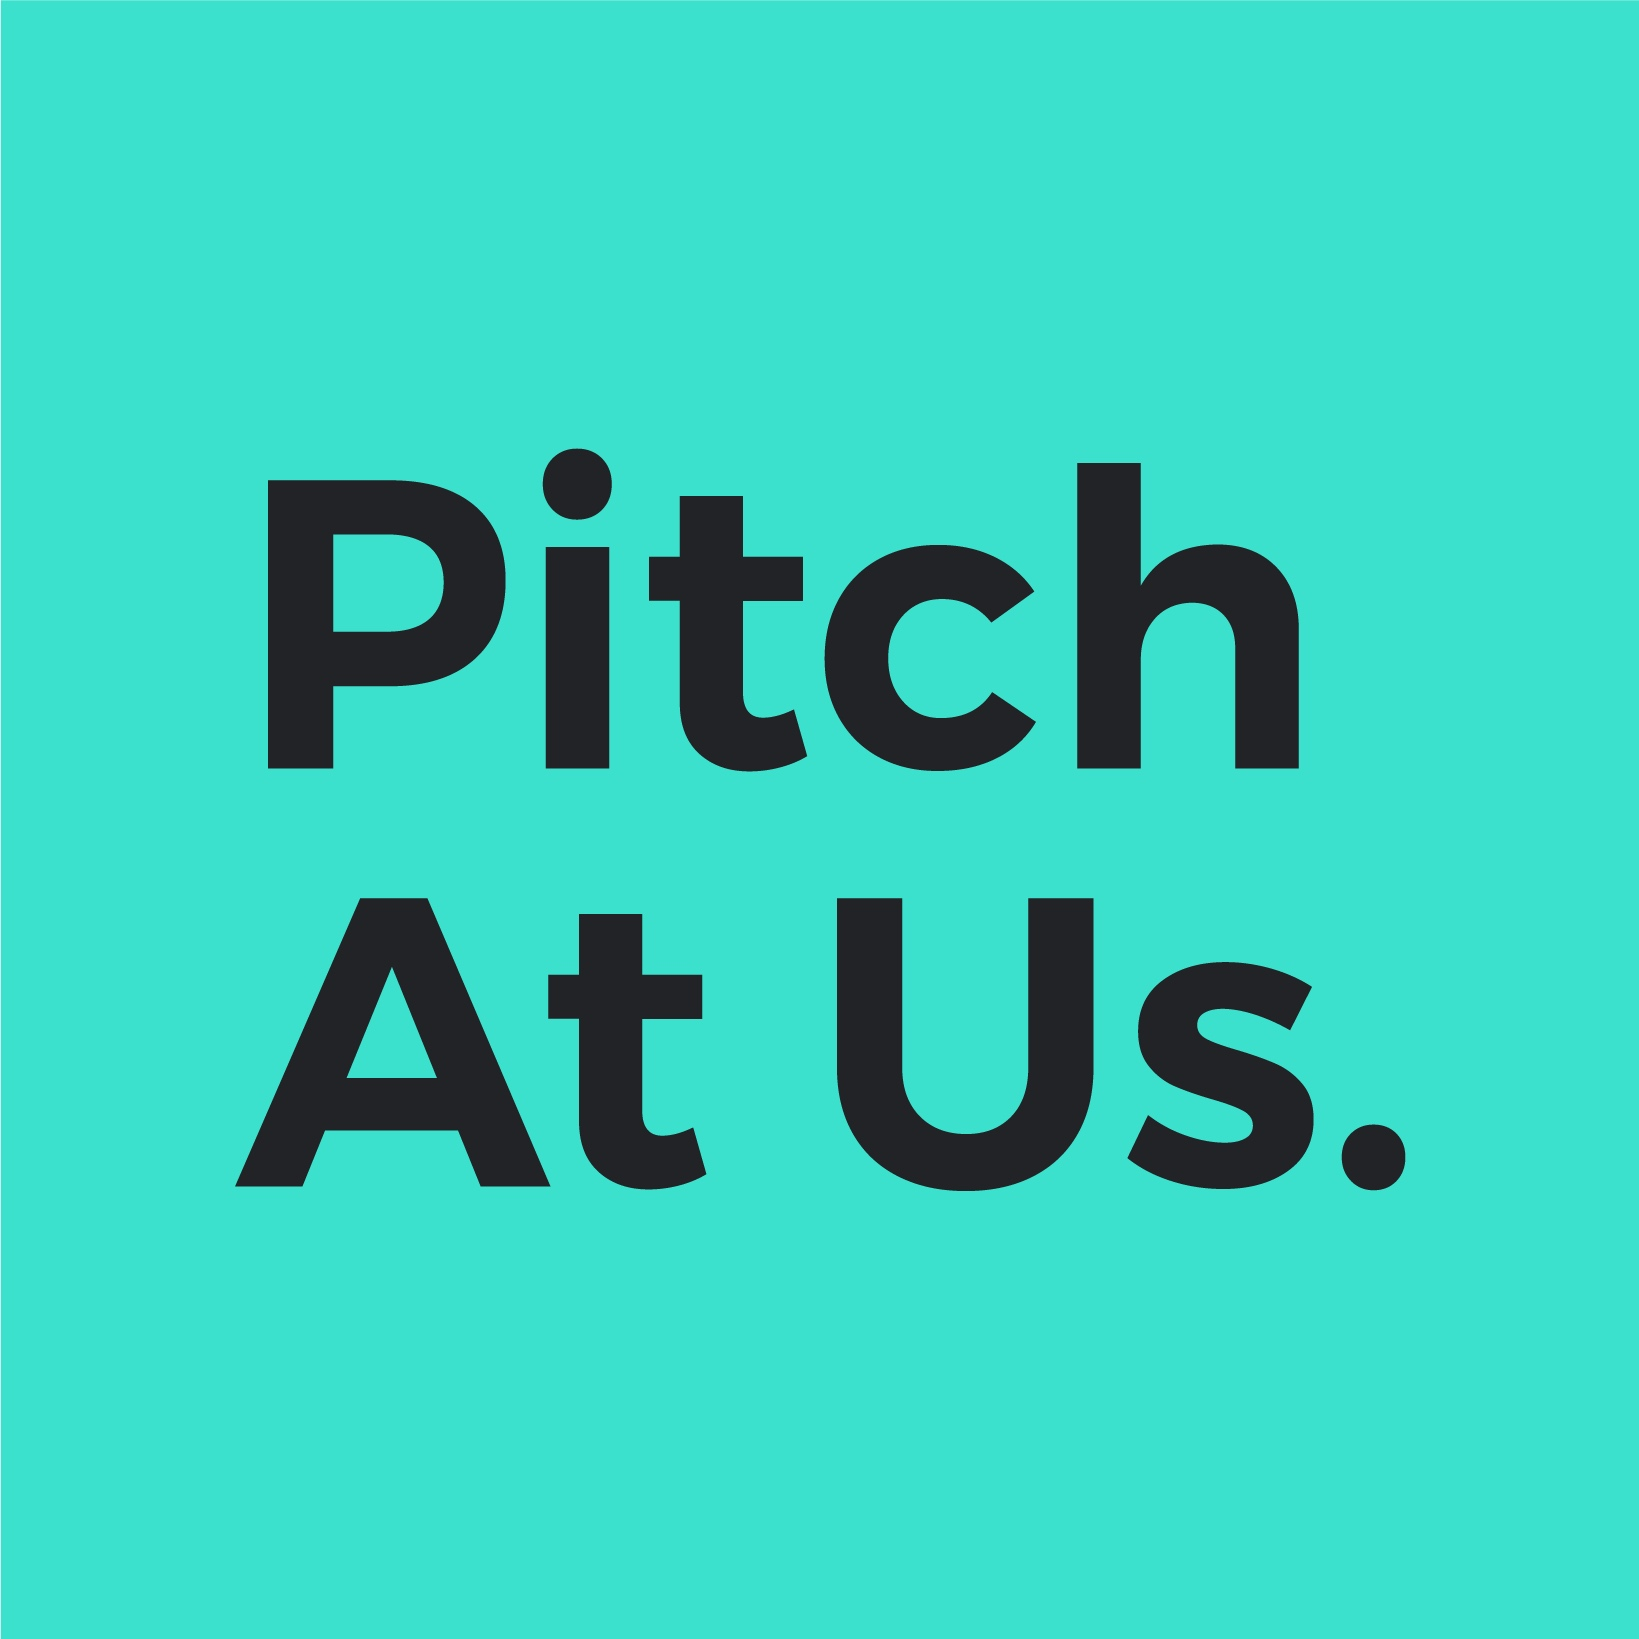 >Are you a start-up looking for funding? We partner with the best team on the planet when it comes to pitching to investors. Pitch At Us is a confidence agency. Together, we ready you to rule the world. Create champagne-worthy moments with investor pitch presentations that sing. Check out Pitch At Us here. -